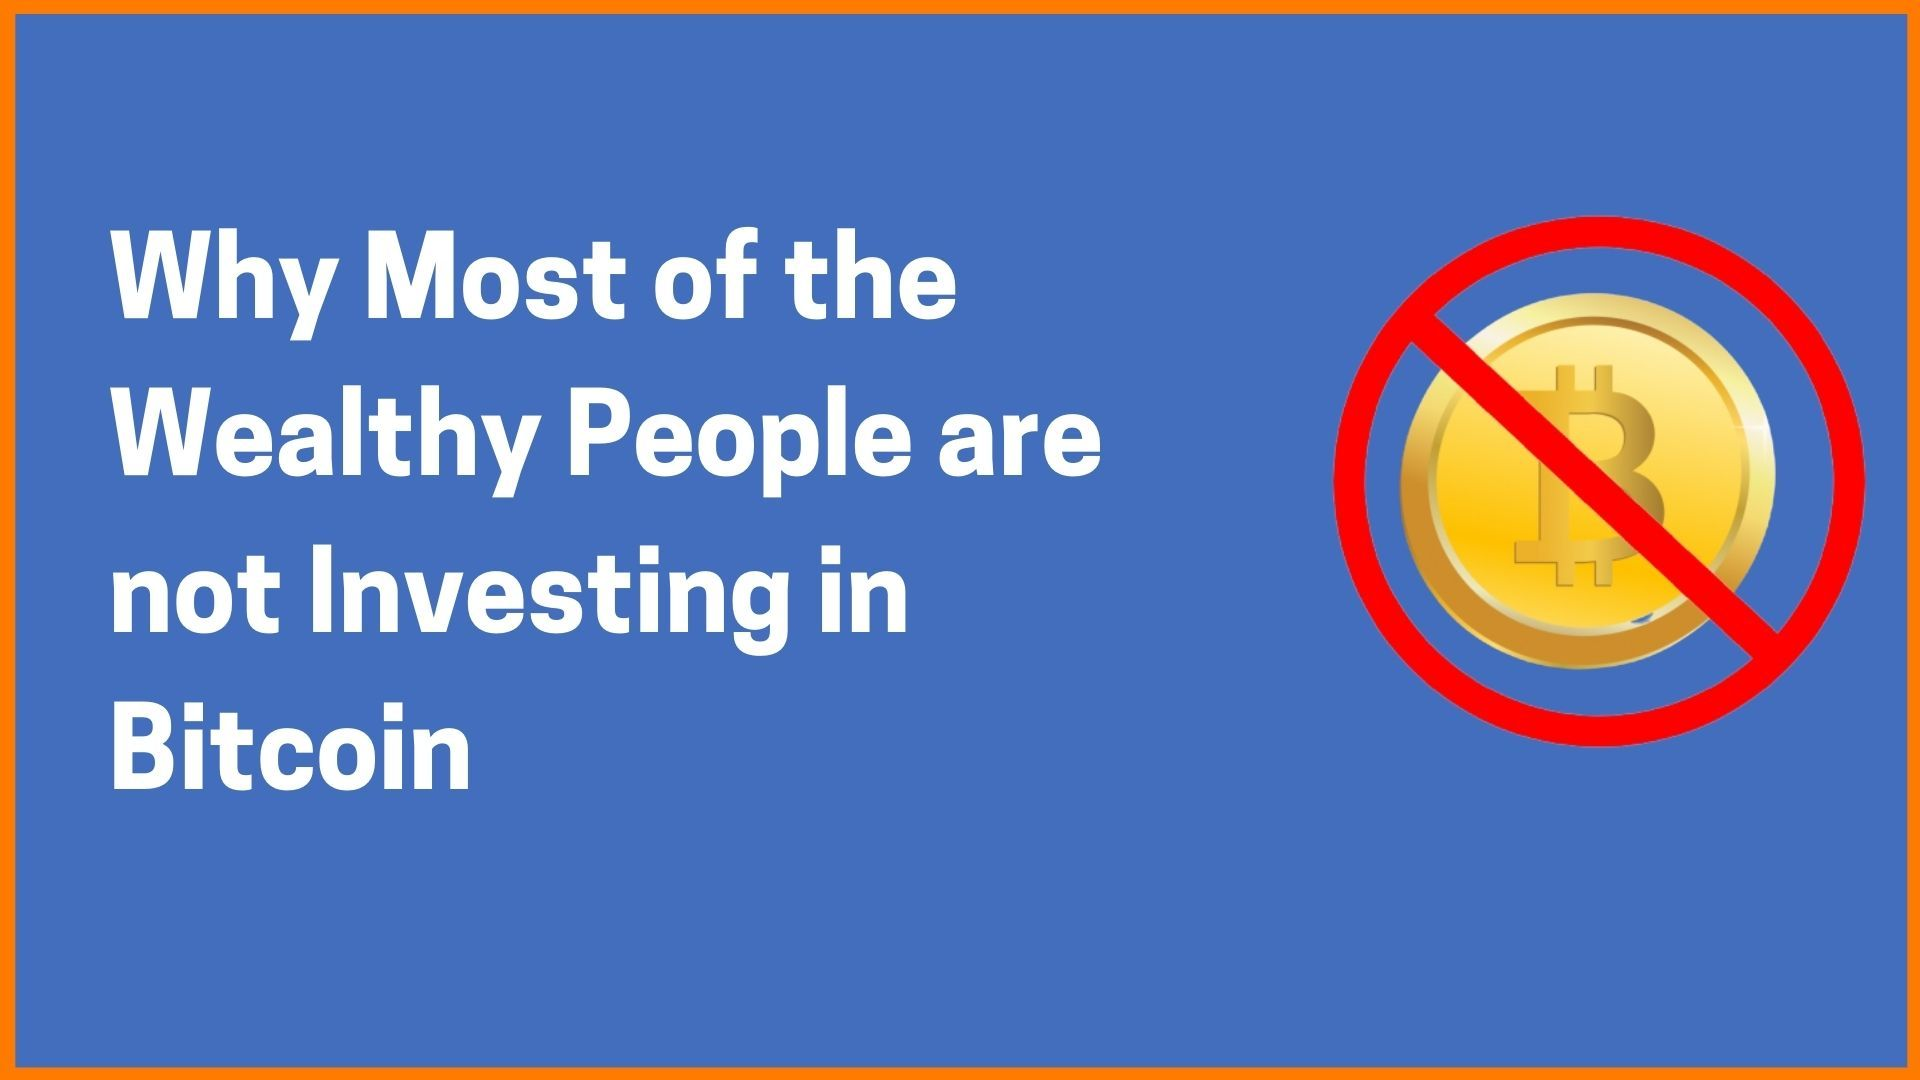 Why Most of the Wealthy People are not Investing in Bitcoin